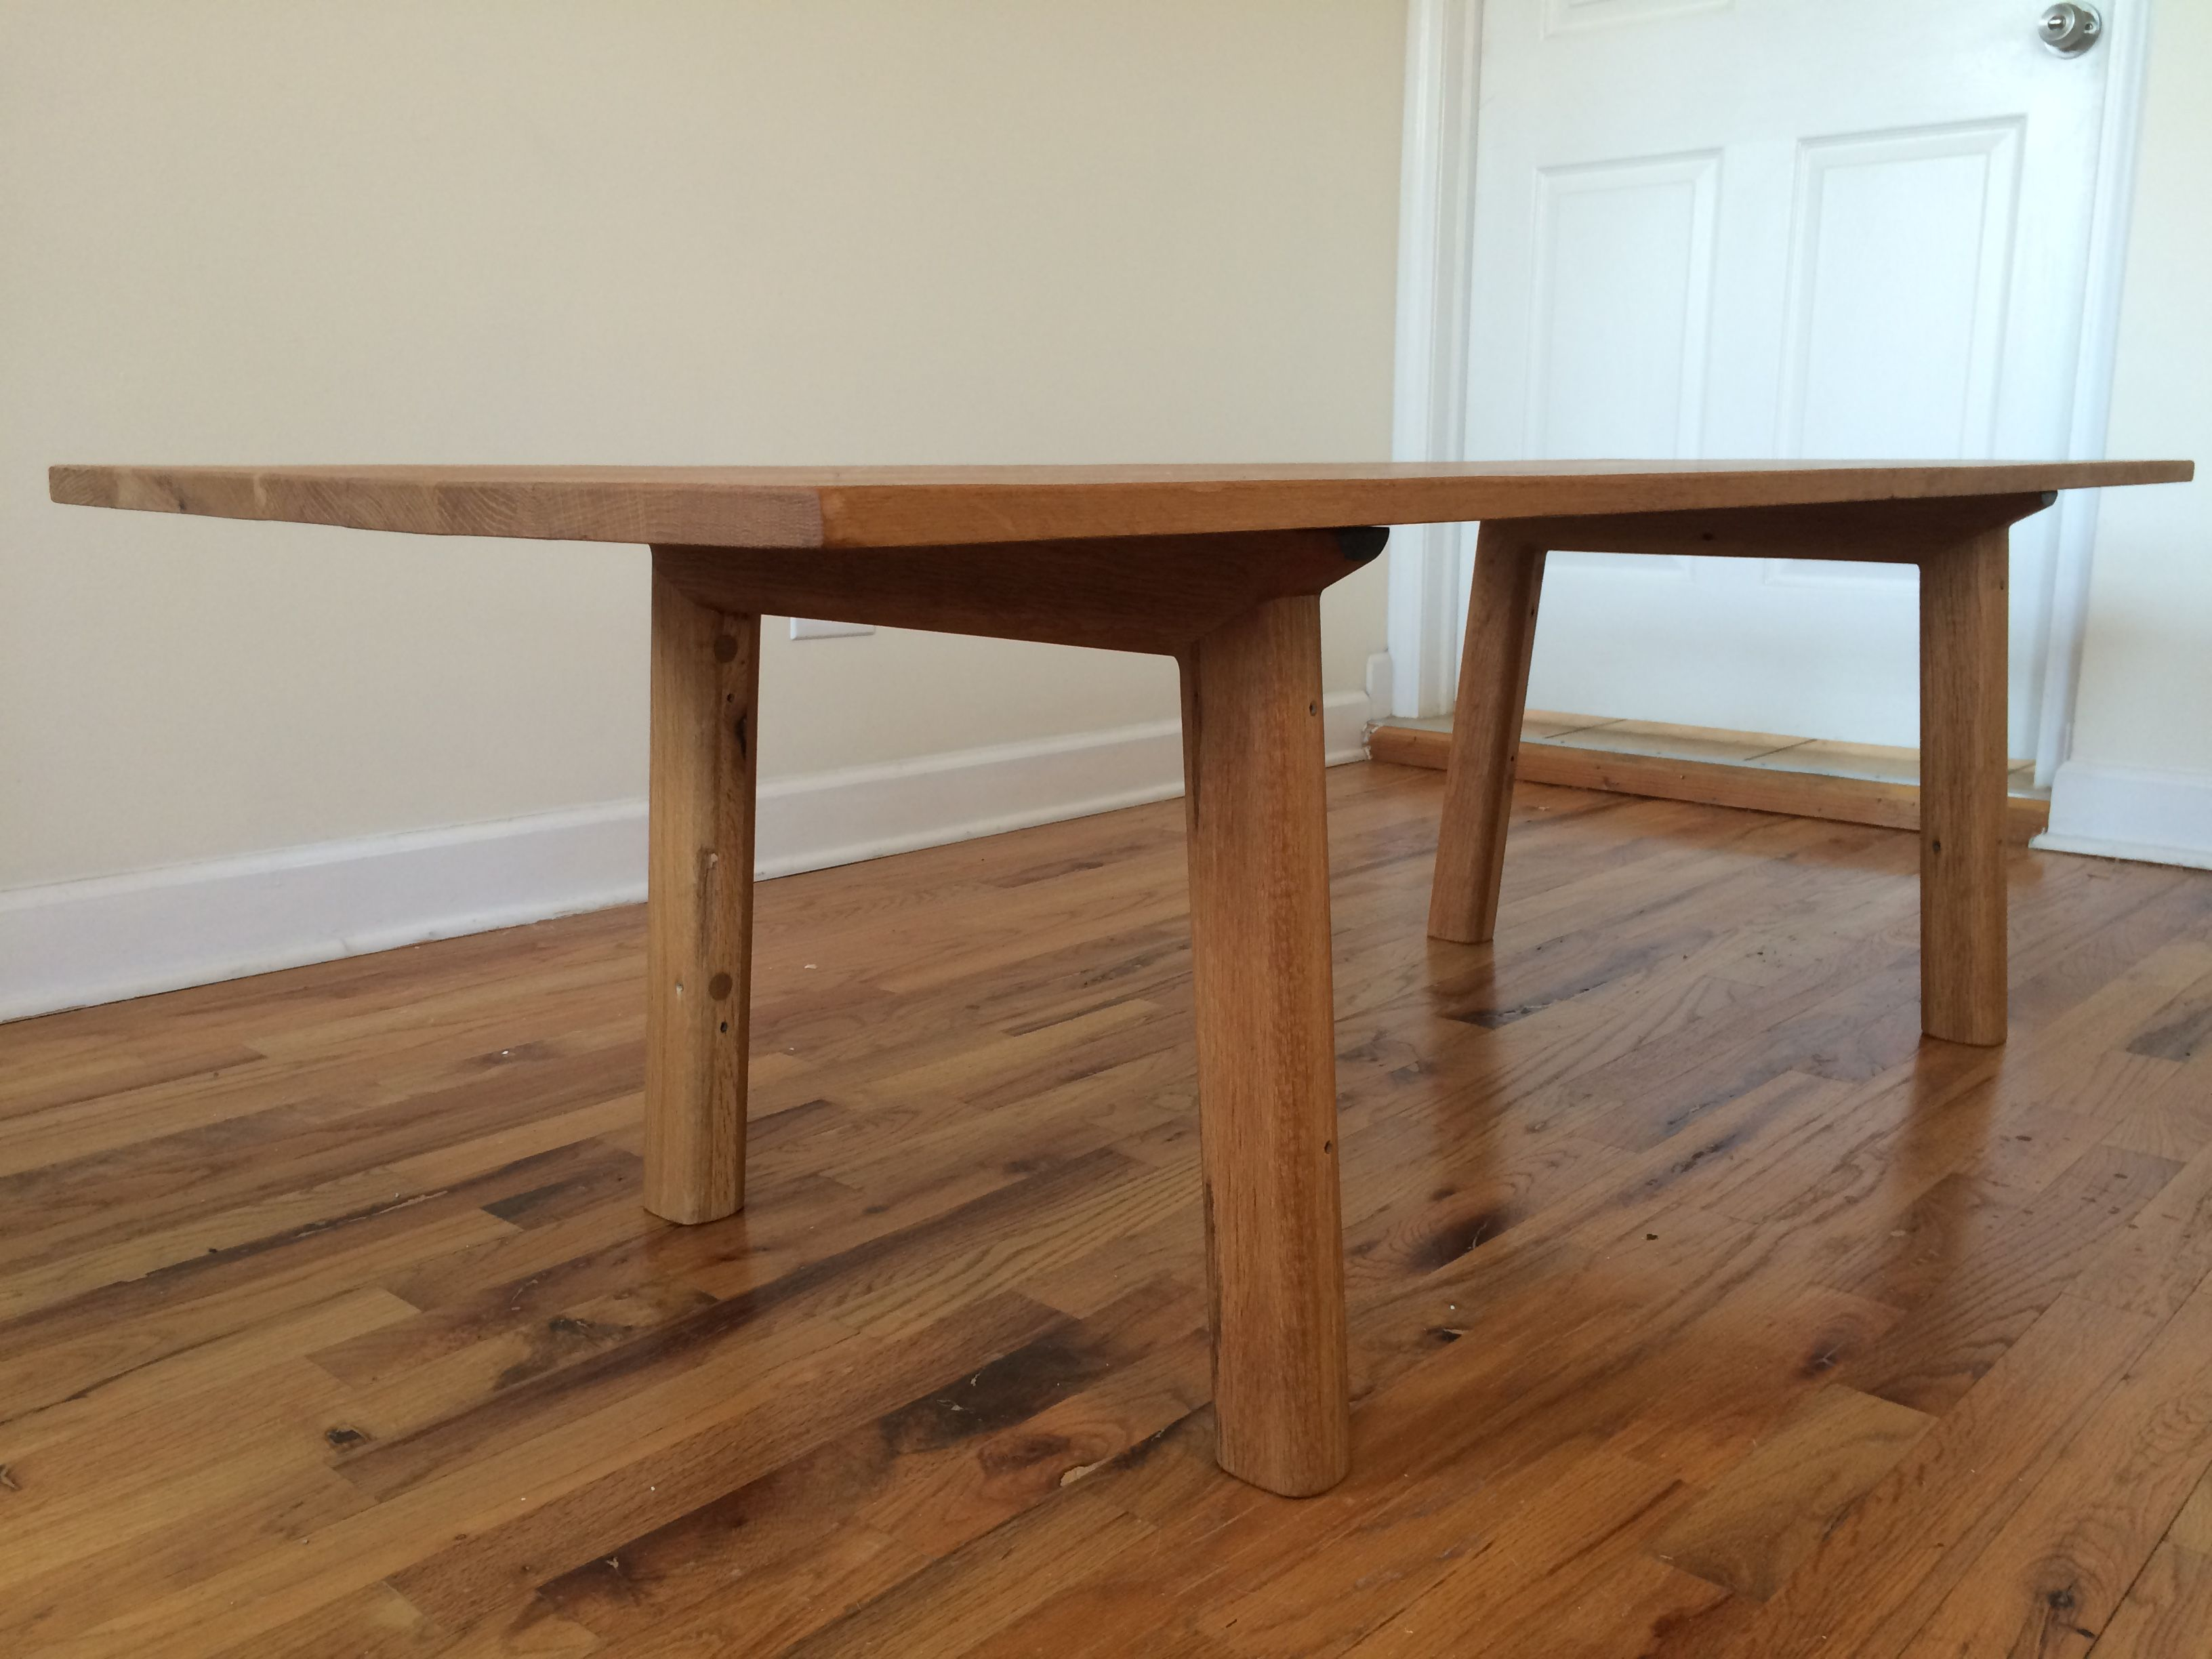 Buy a Handmade Reclaimed Red Oak Mid Century Modern Inspired